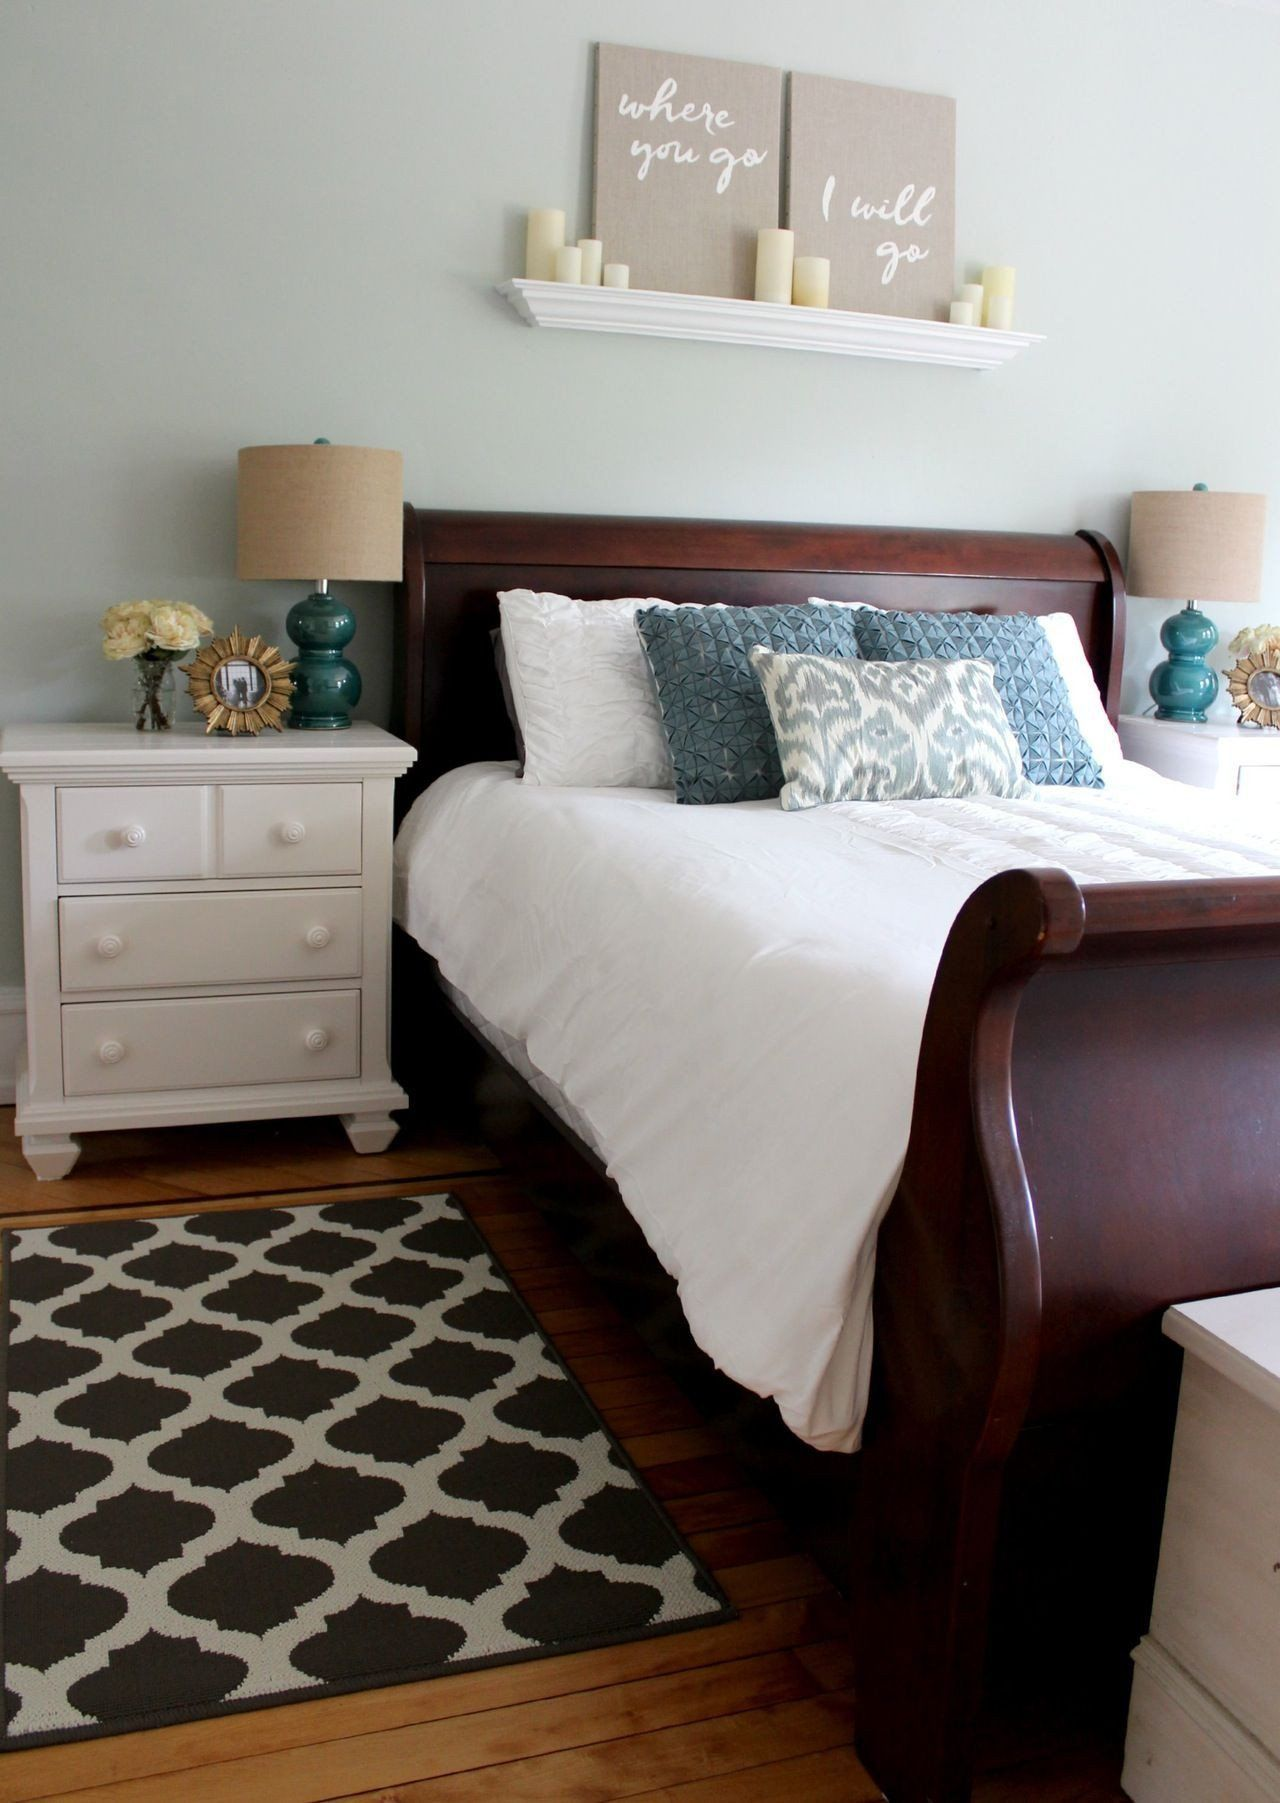 19+ Farmhouse bedroom with cherry furniture ideas in 2021